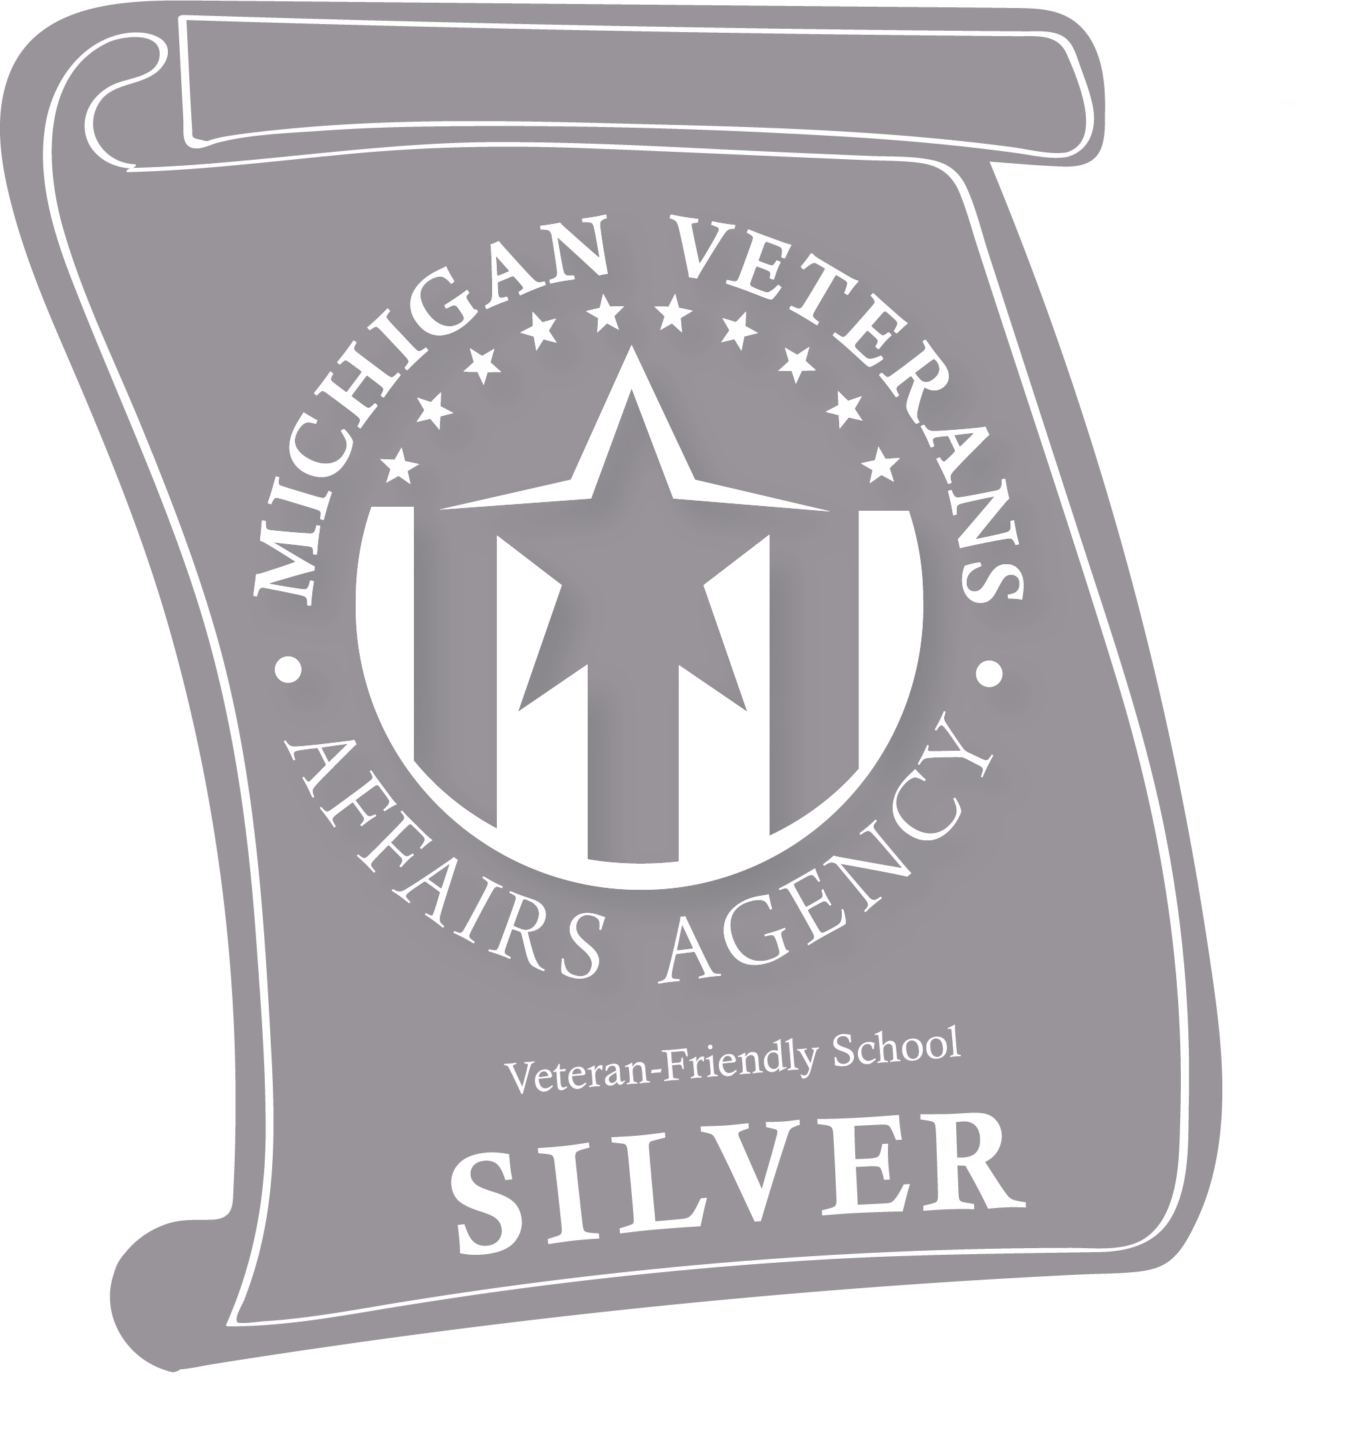 Michigan Veterans Affairs Agency Silver